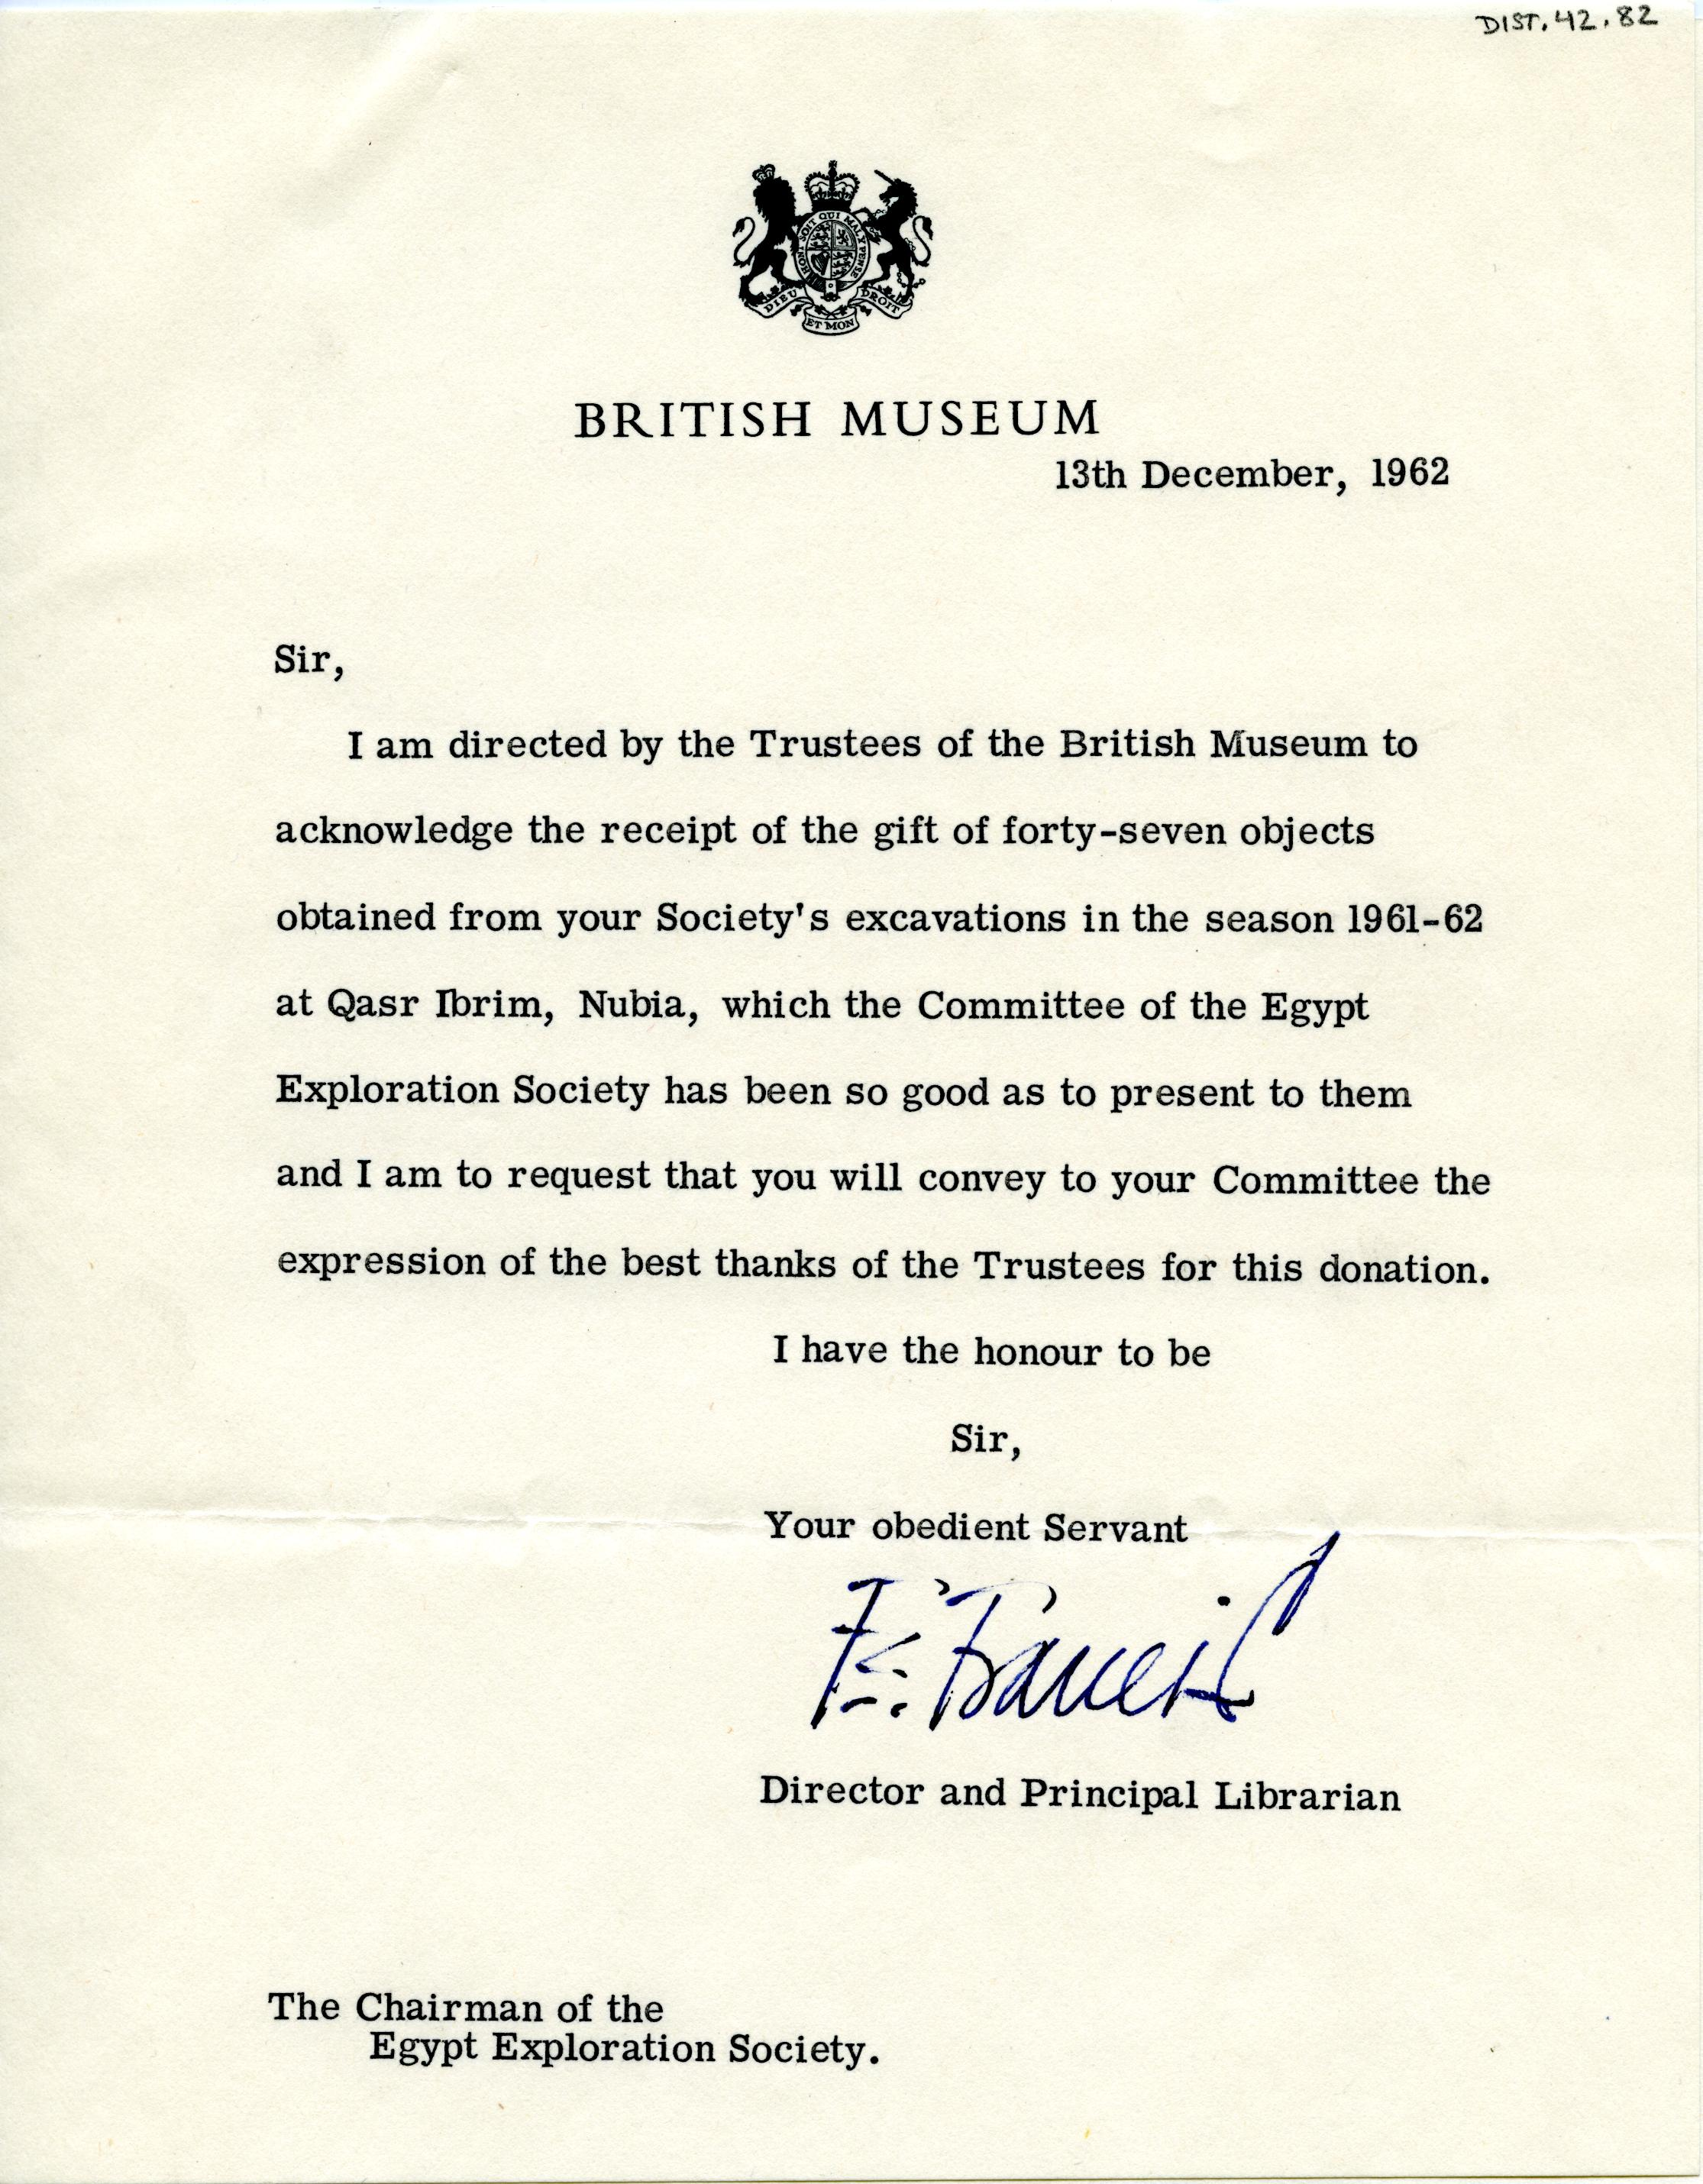 1922-71 Miscellaneous correspondence with museums DIST.42.82